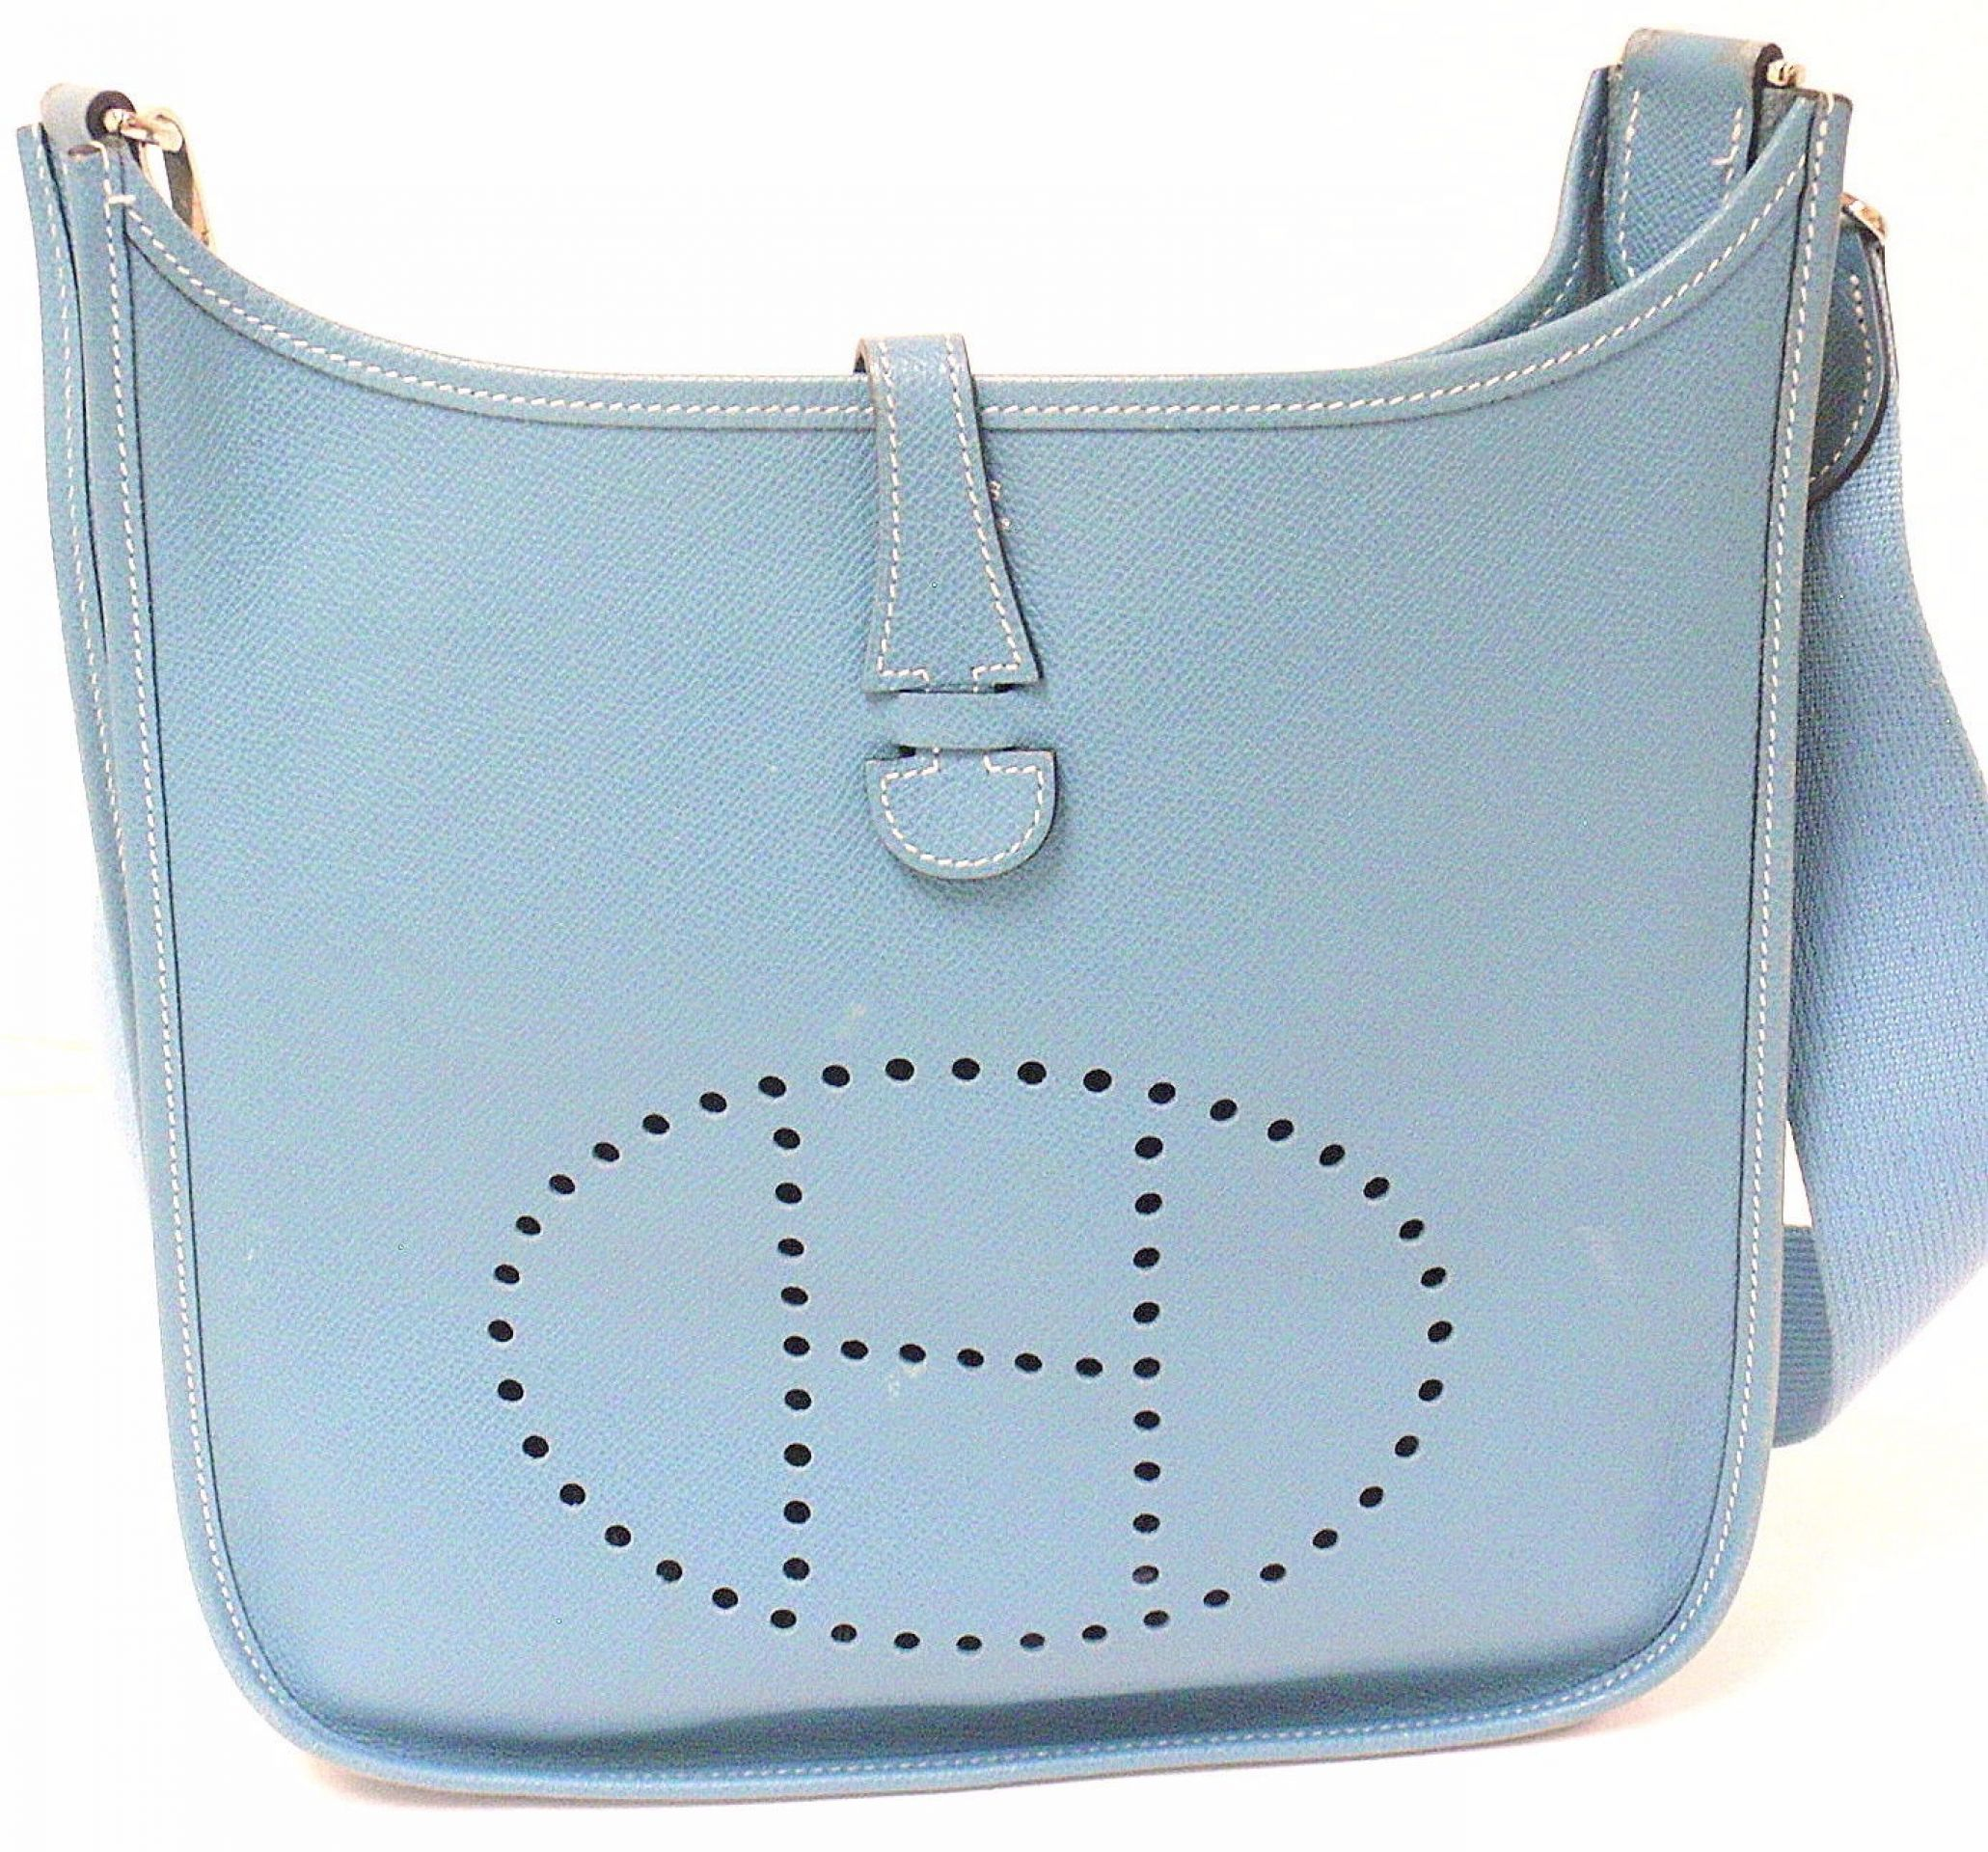 AUTHENTIC! HERMES EVELYNE PM BLUE JEAN EPSOM LEATHER SHW SHOULDER BAG